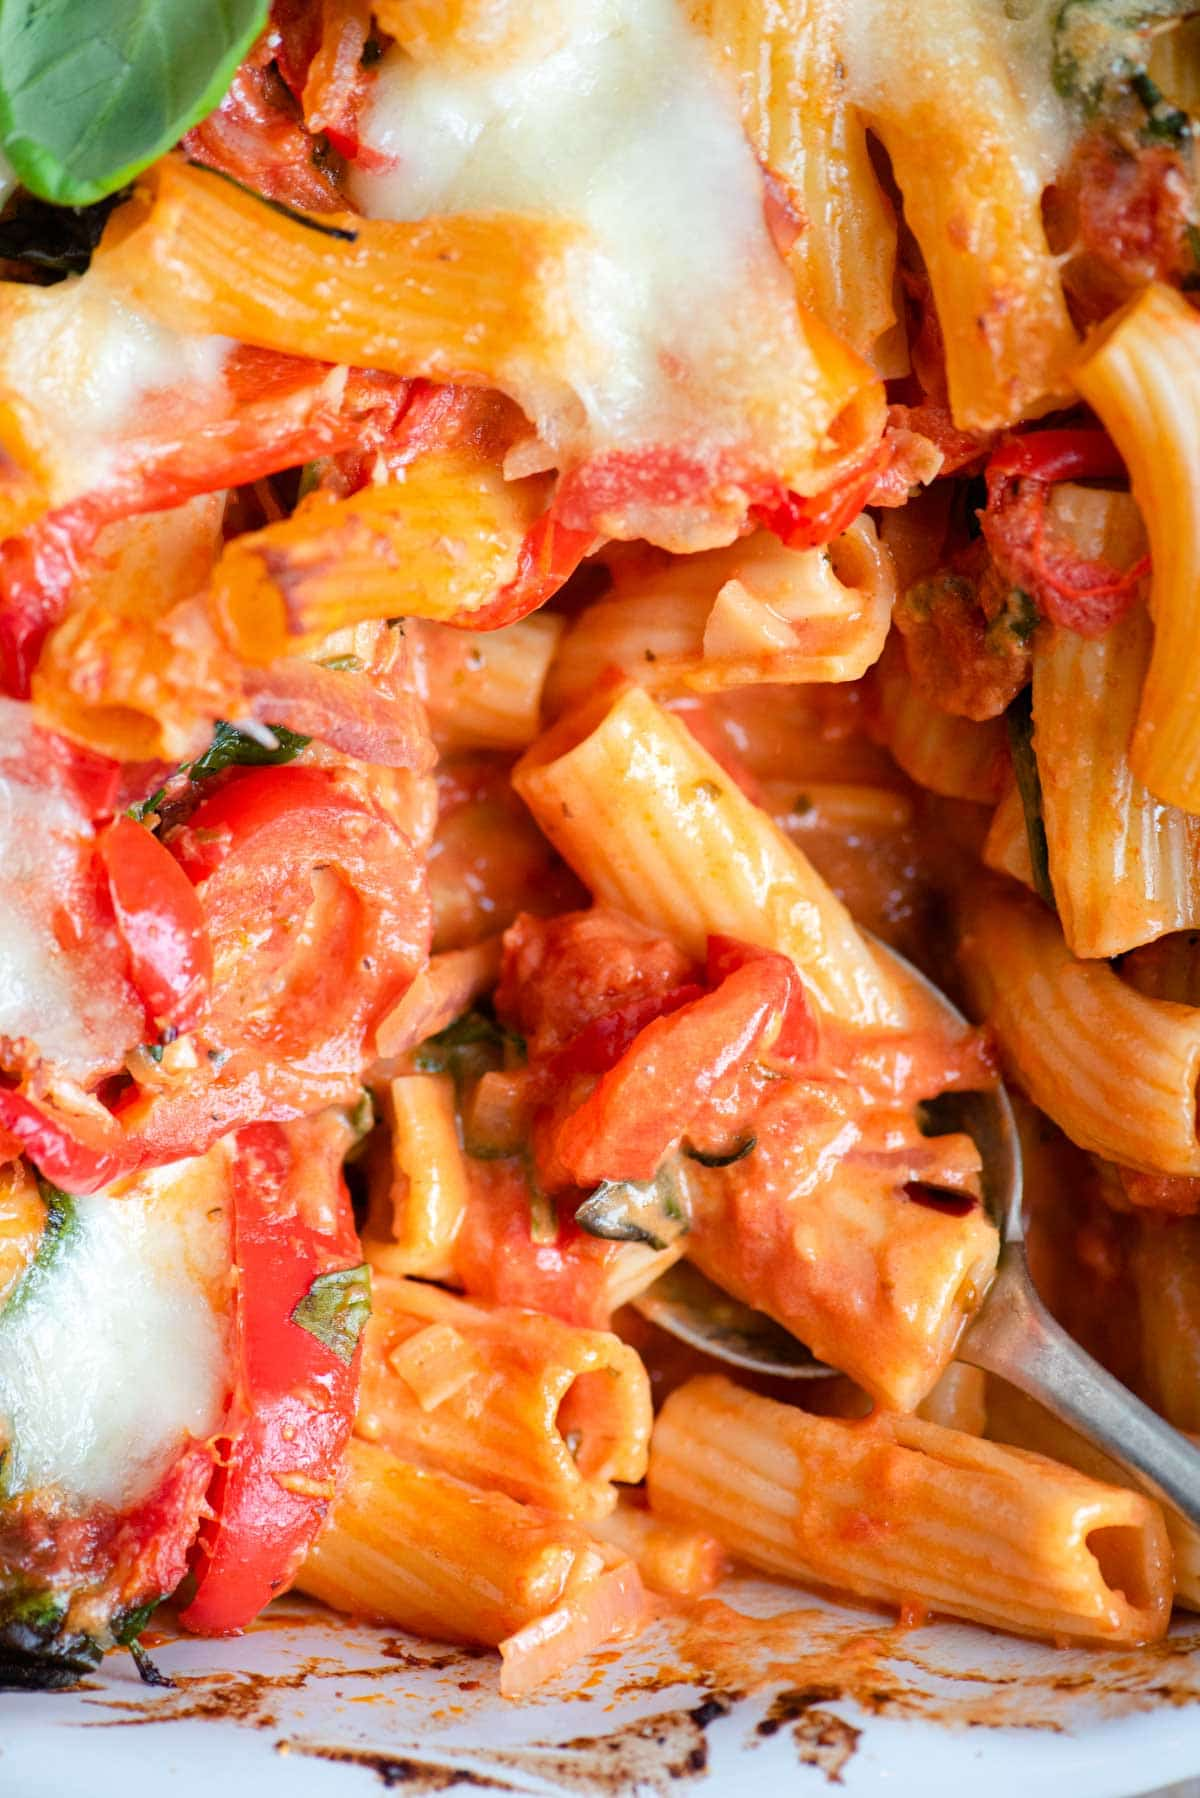 A close up of baked ziti with vegetables in a tomato sauce